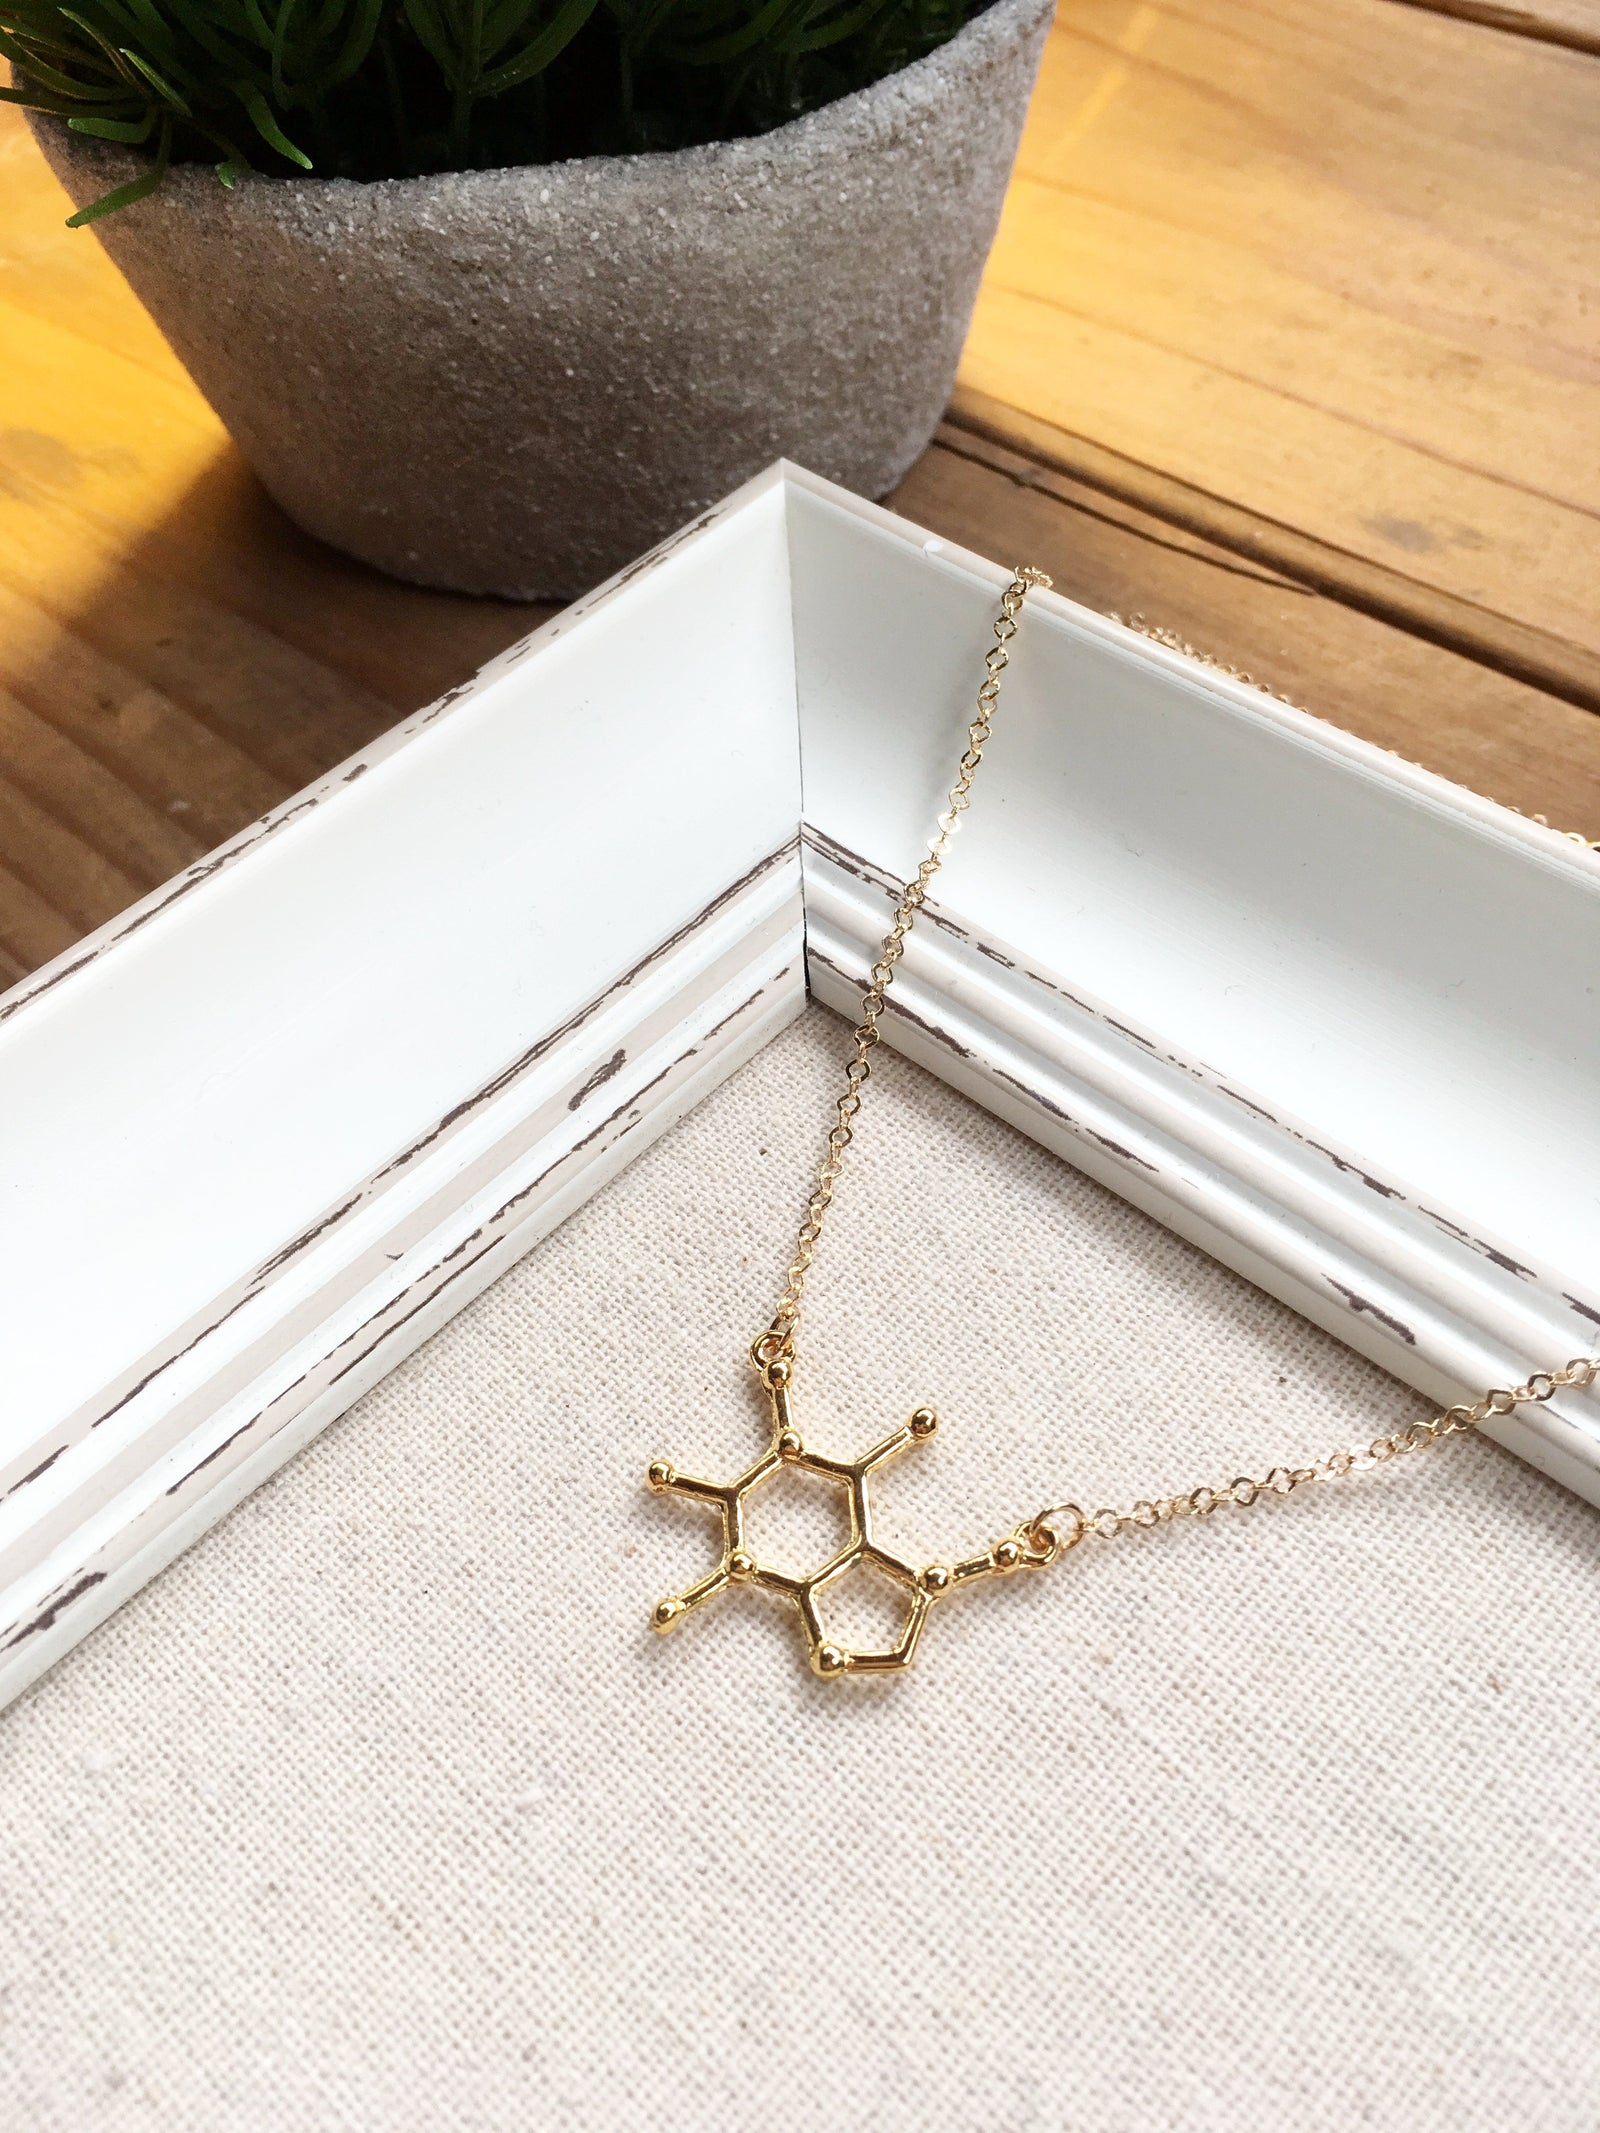 GOLDEN CAFFEINE MOLECULE NECKLACE